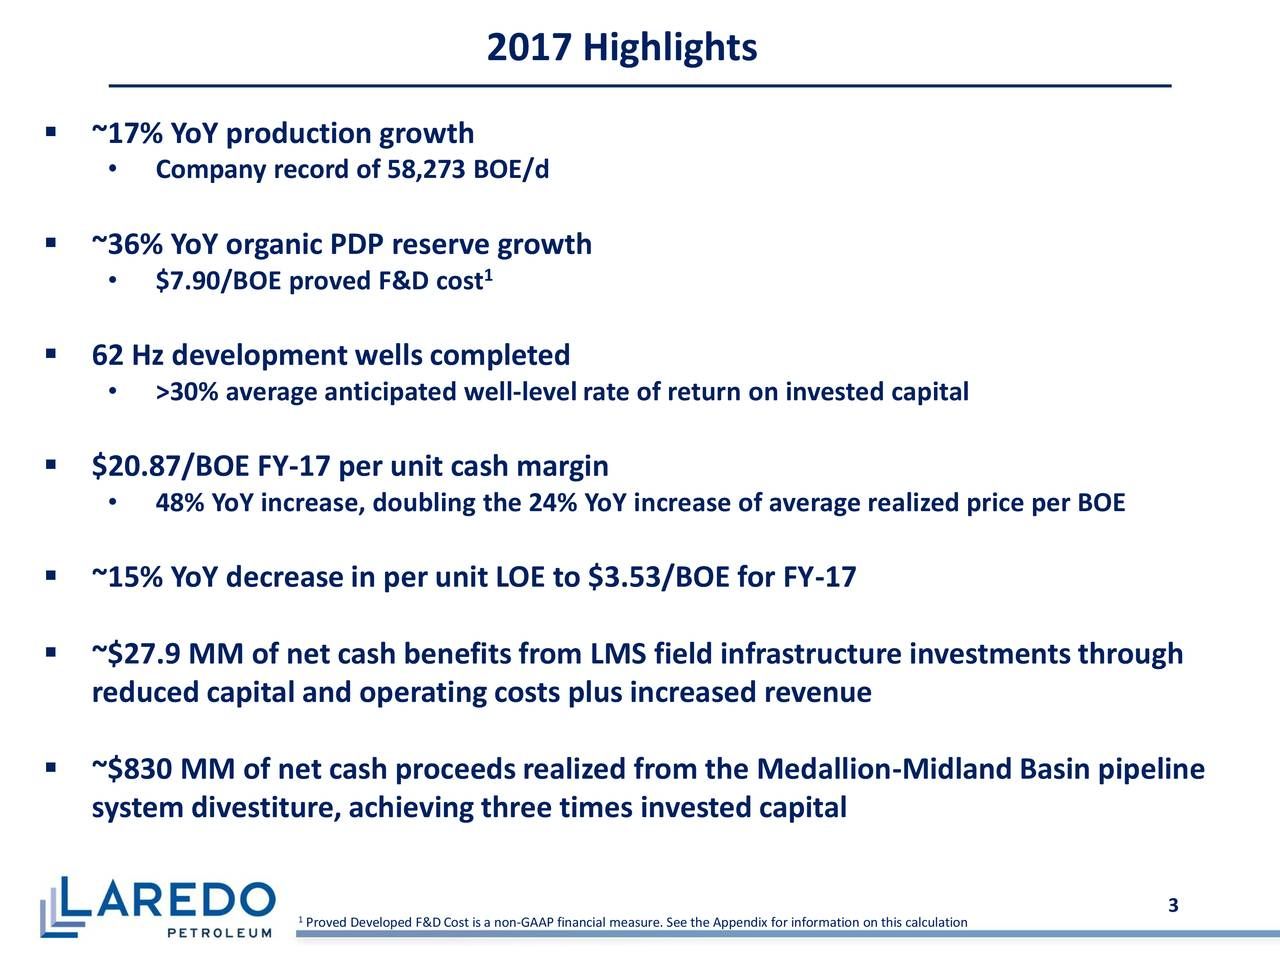 Laredo Petroleum Holdings Inc 2017 Q4 Results